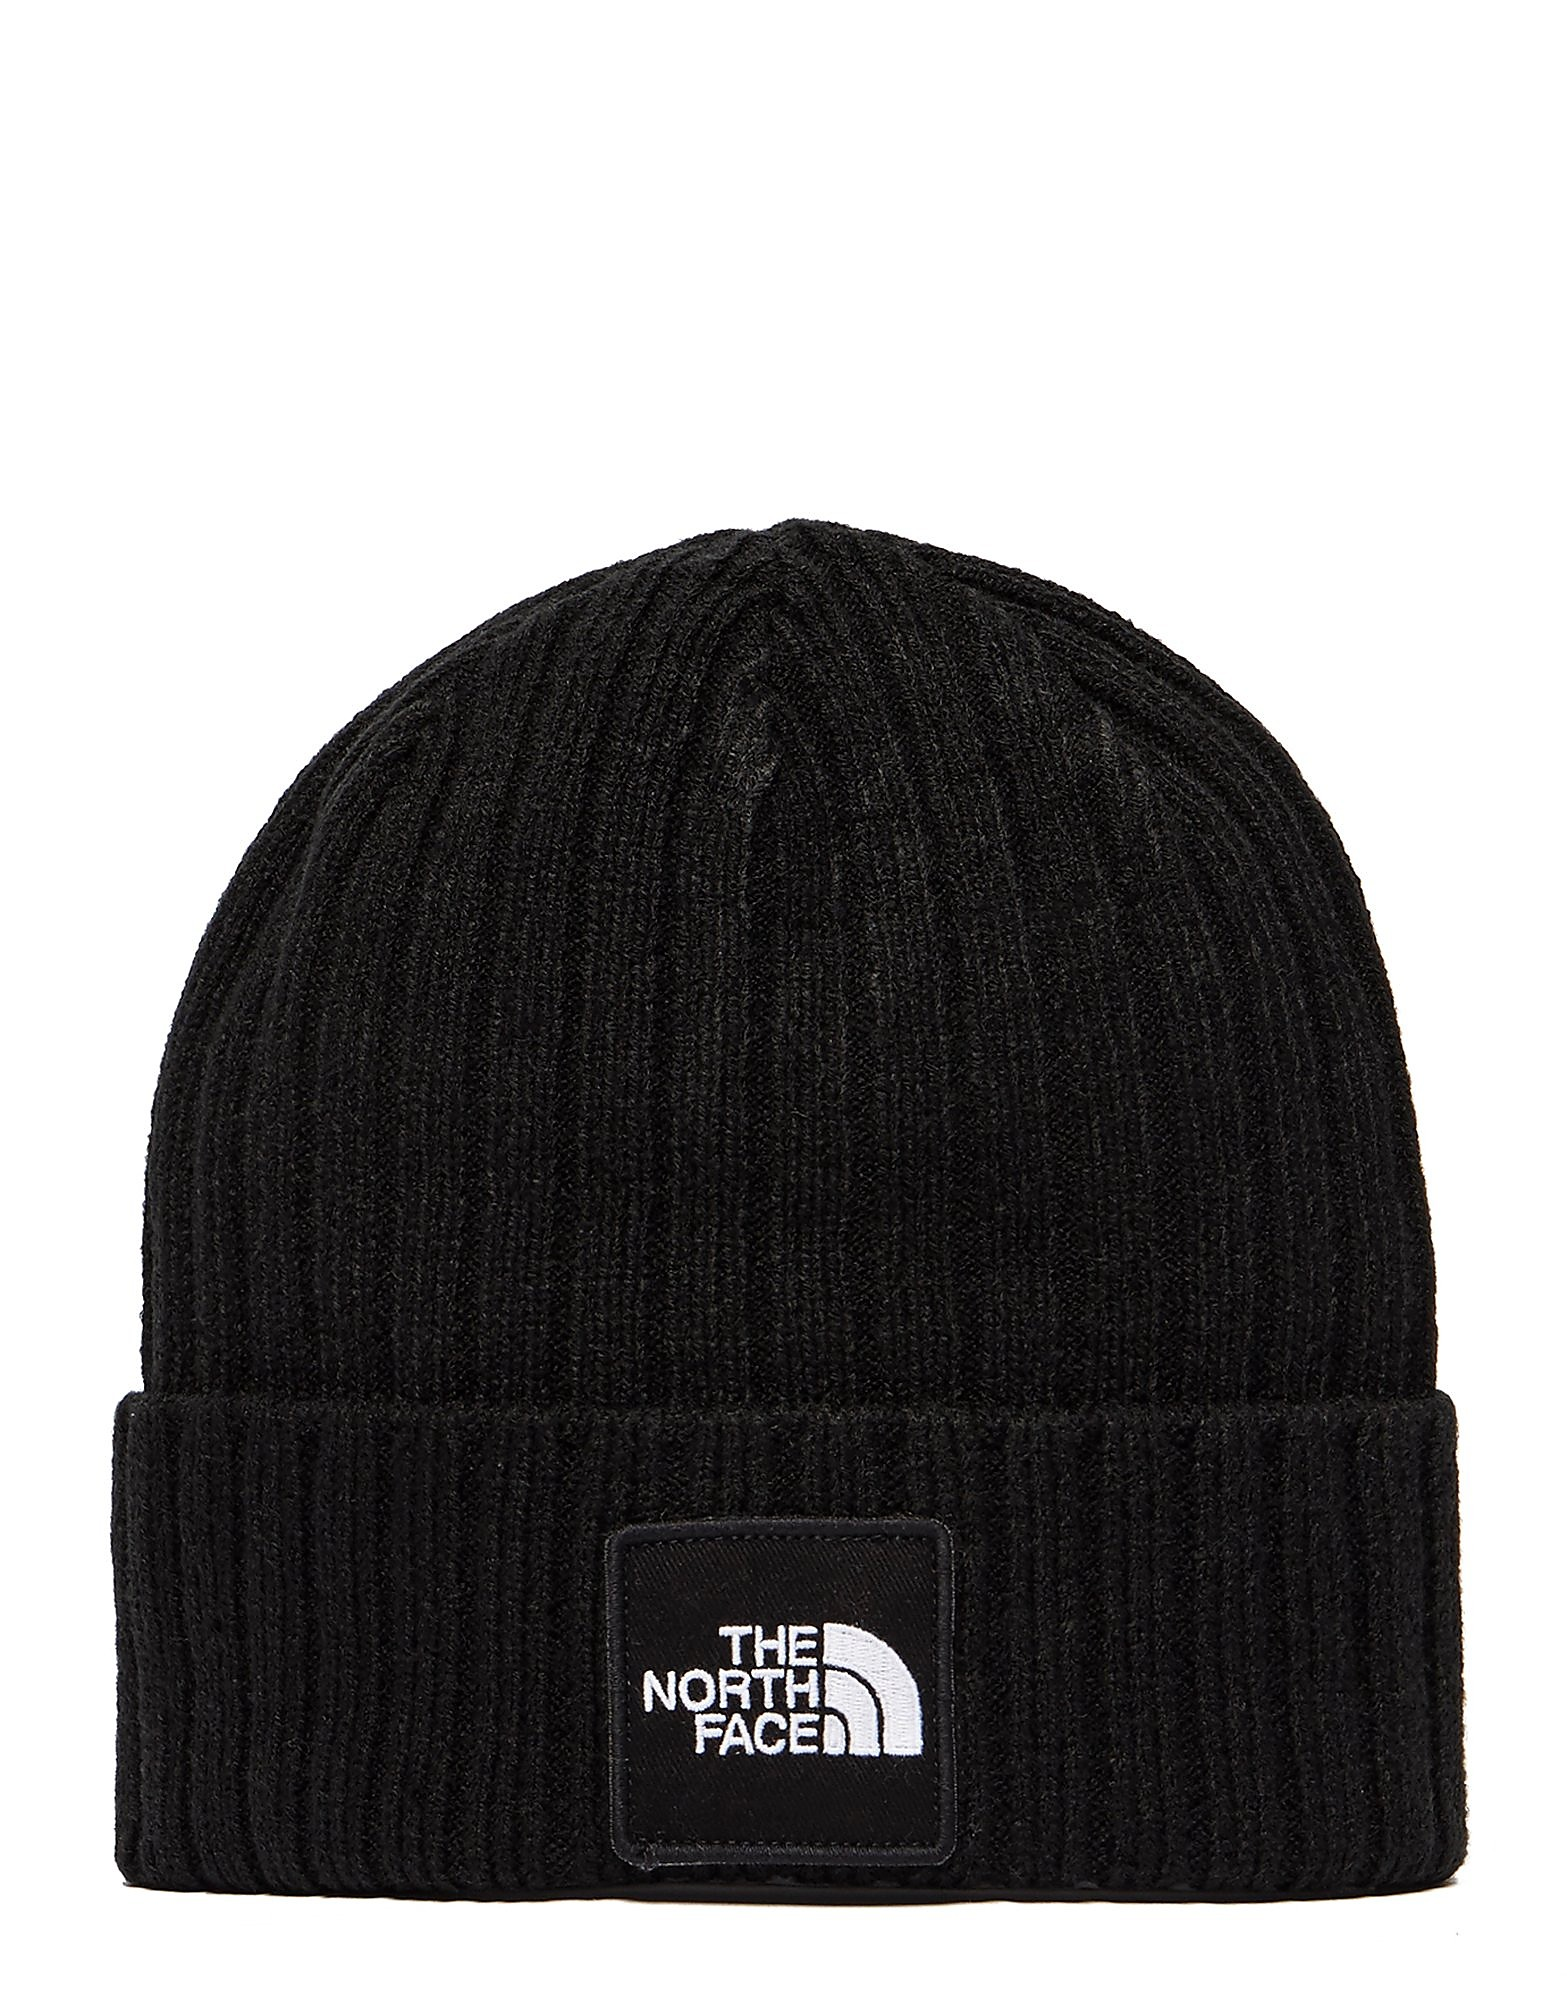 The North Face Bonnet Cuff Beanie